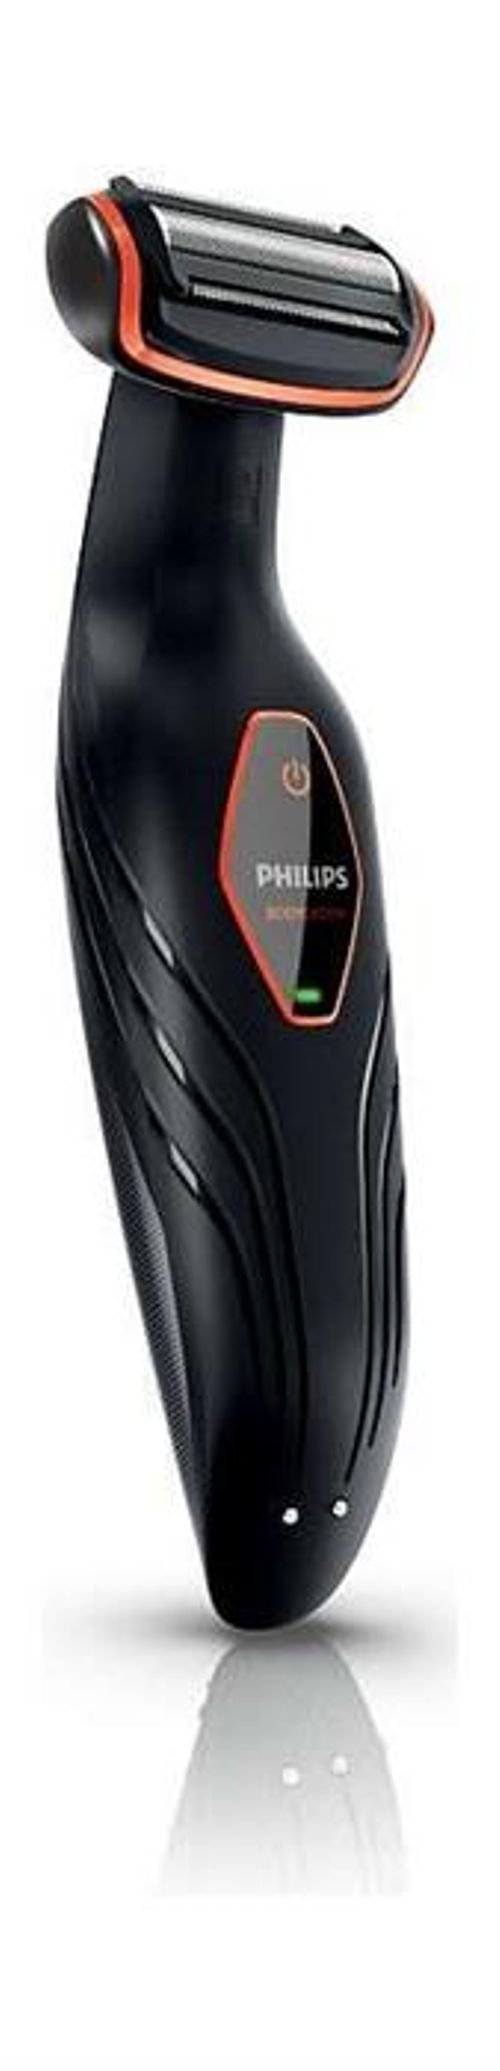 philips groomer beard trimmer bg2024 15 qt4015 23 at750 20 90. Black Bedroom Furniture Sets. Home Design Ideas